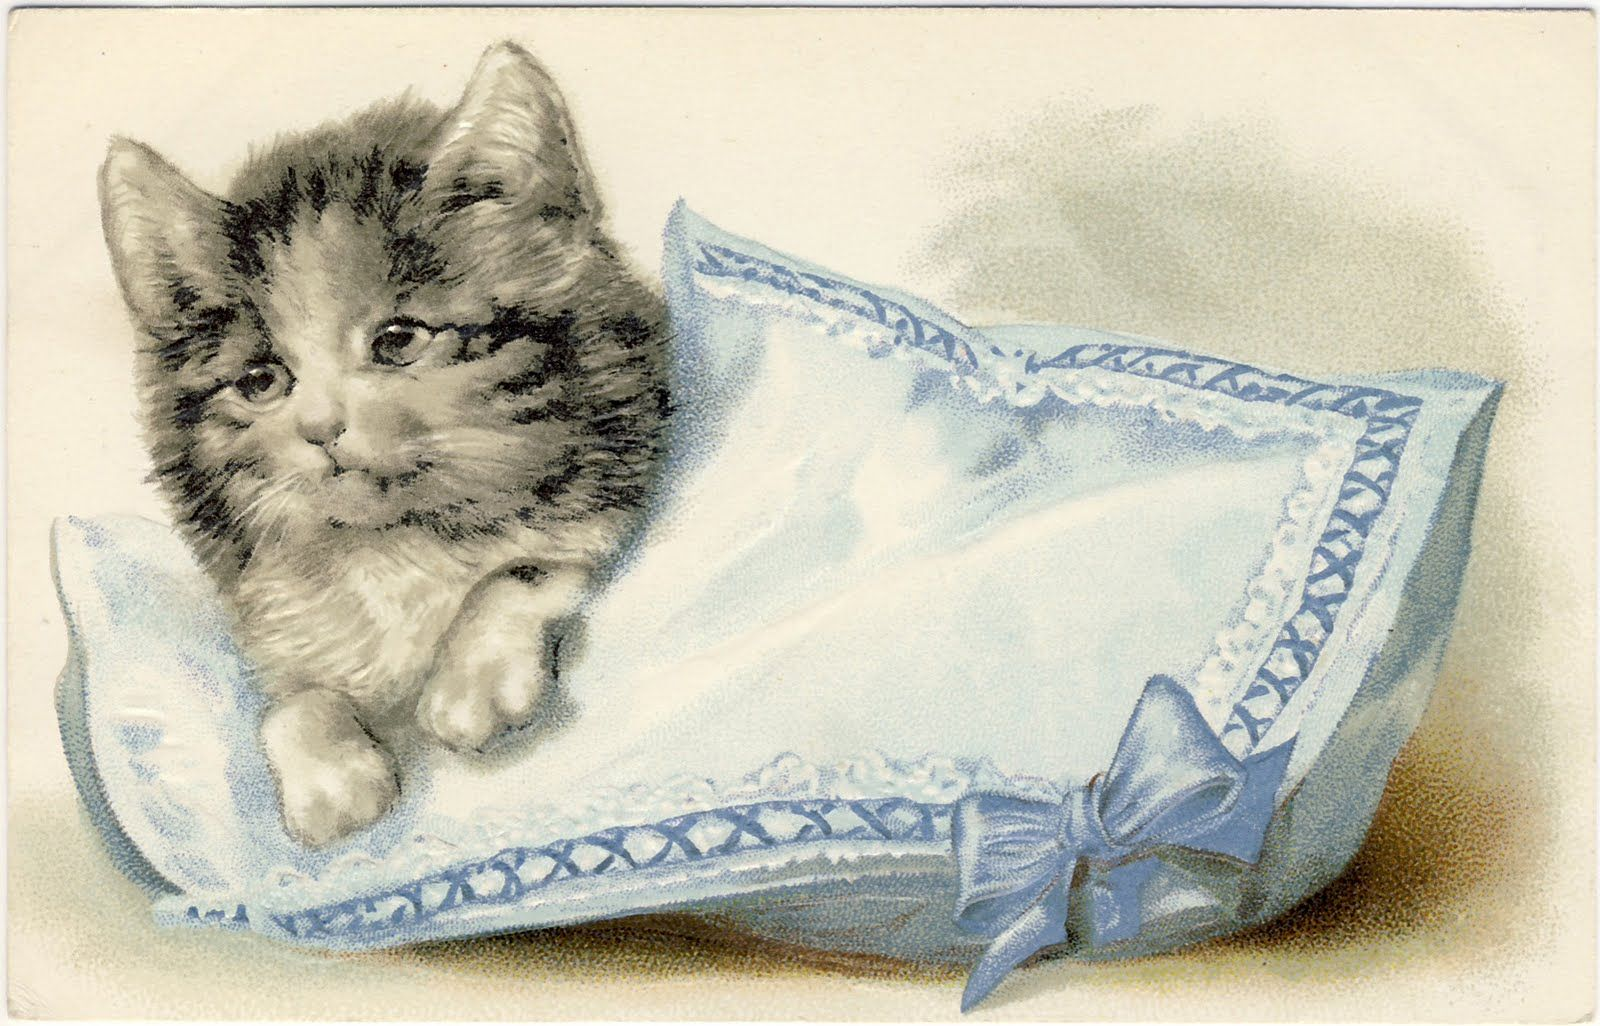 Vintage Clip Art Adorable Cats Kittens The Graphics Fairy Cute Cats Cats And Kittens Kitten Pictures